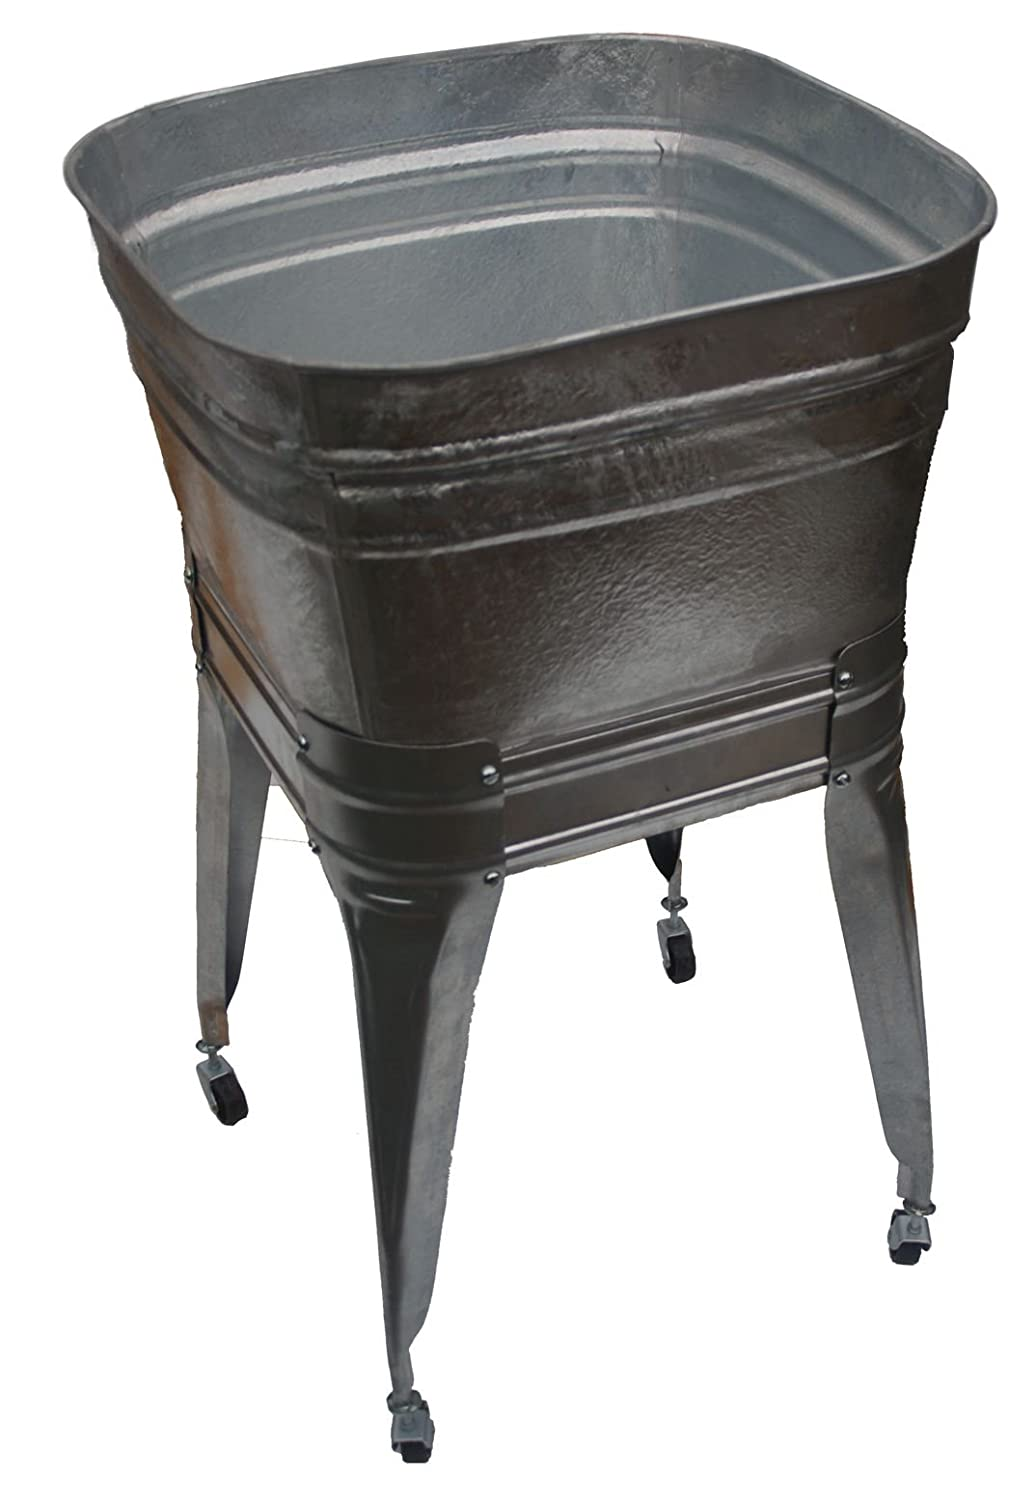 Square Wash Tub with stand and drain - - Amazon.com